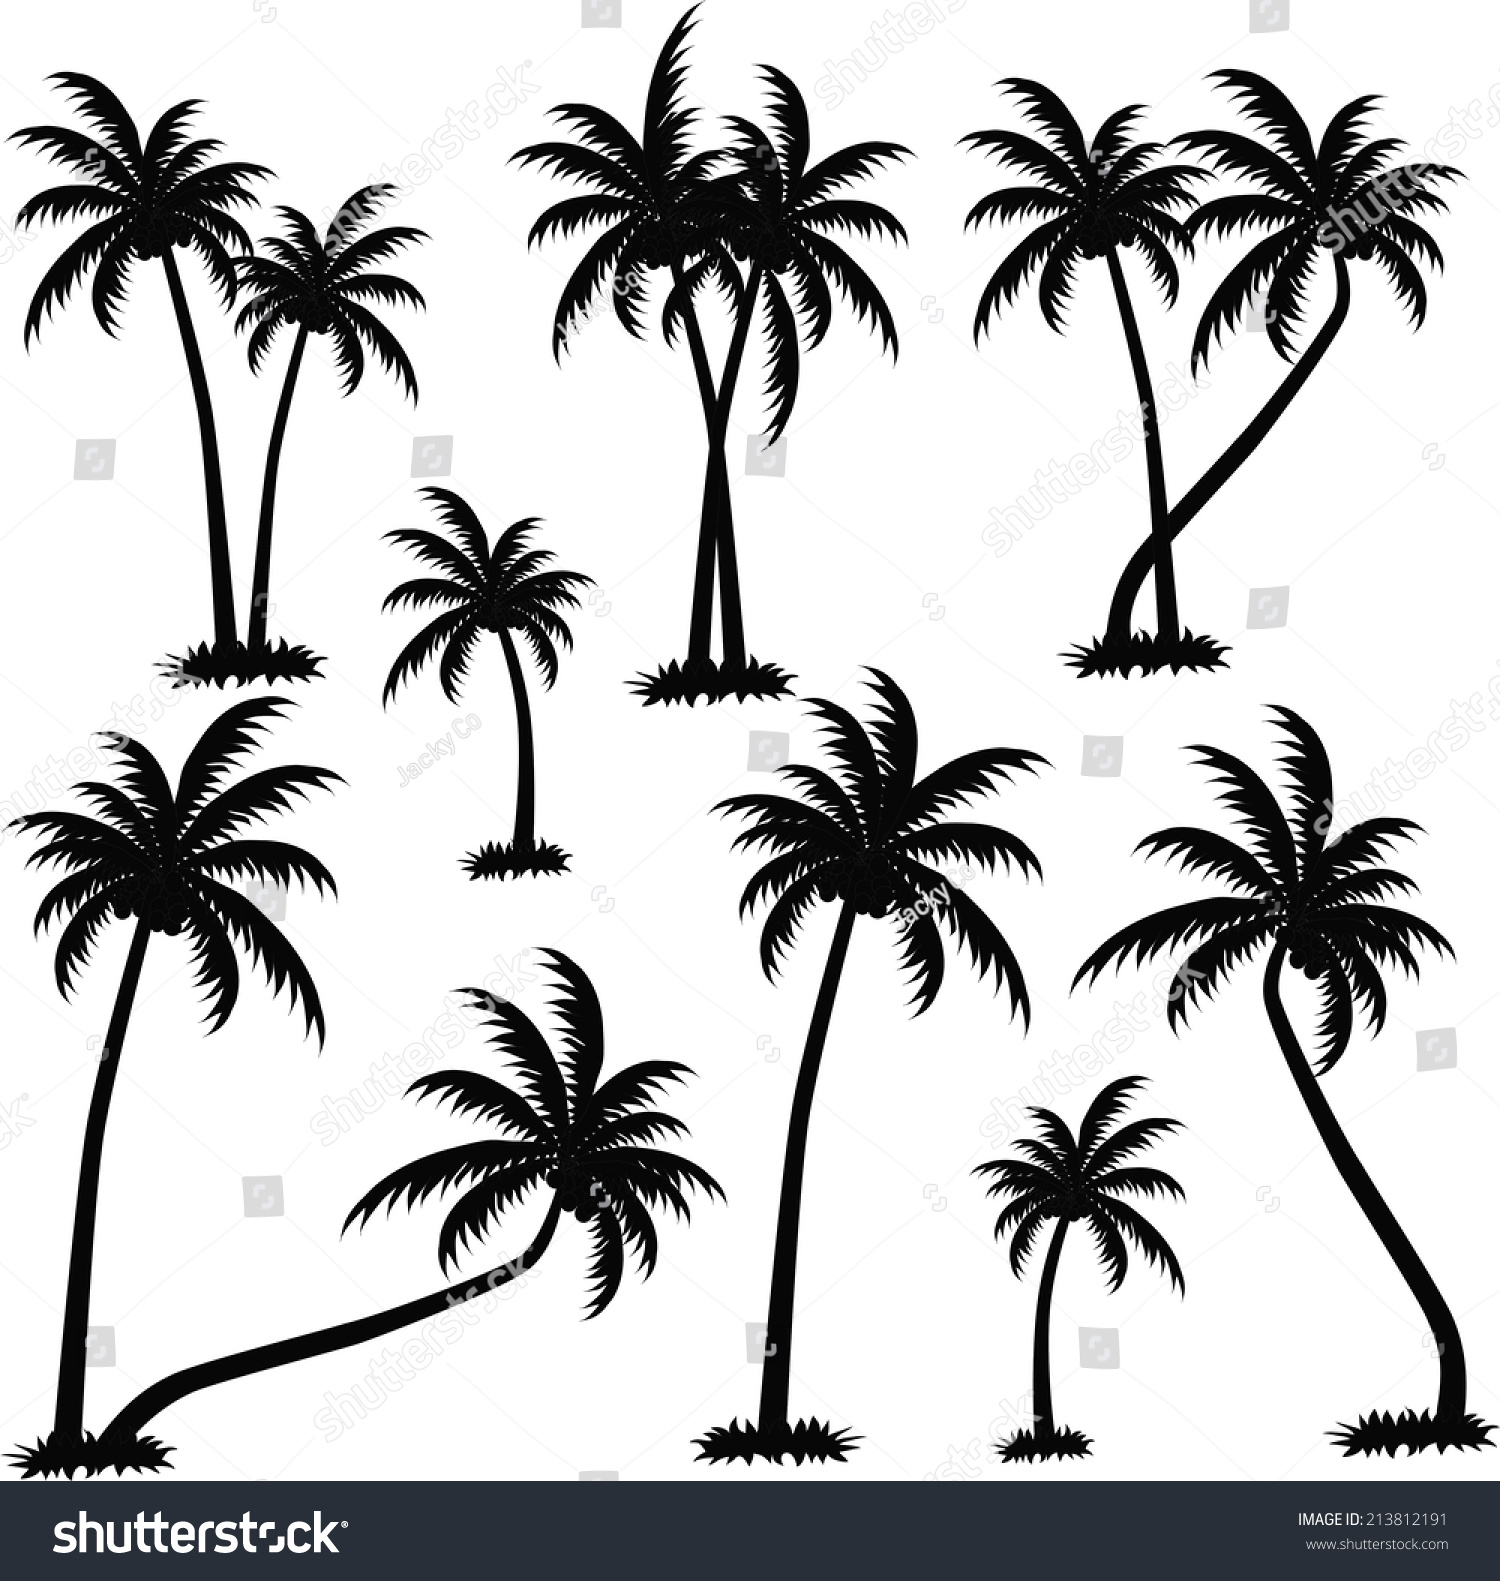 Palm Trees Vector Stock Vector 213812191 - Shutterstock